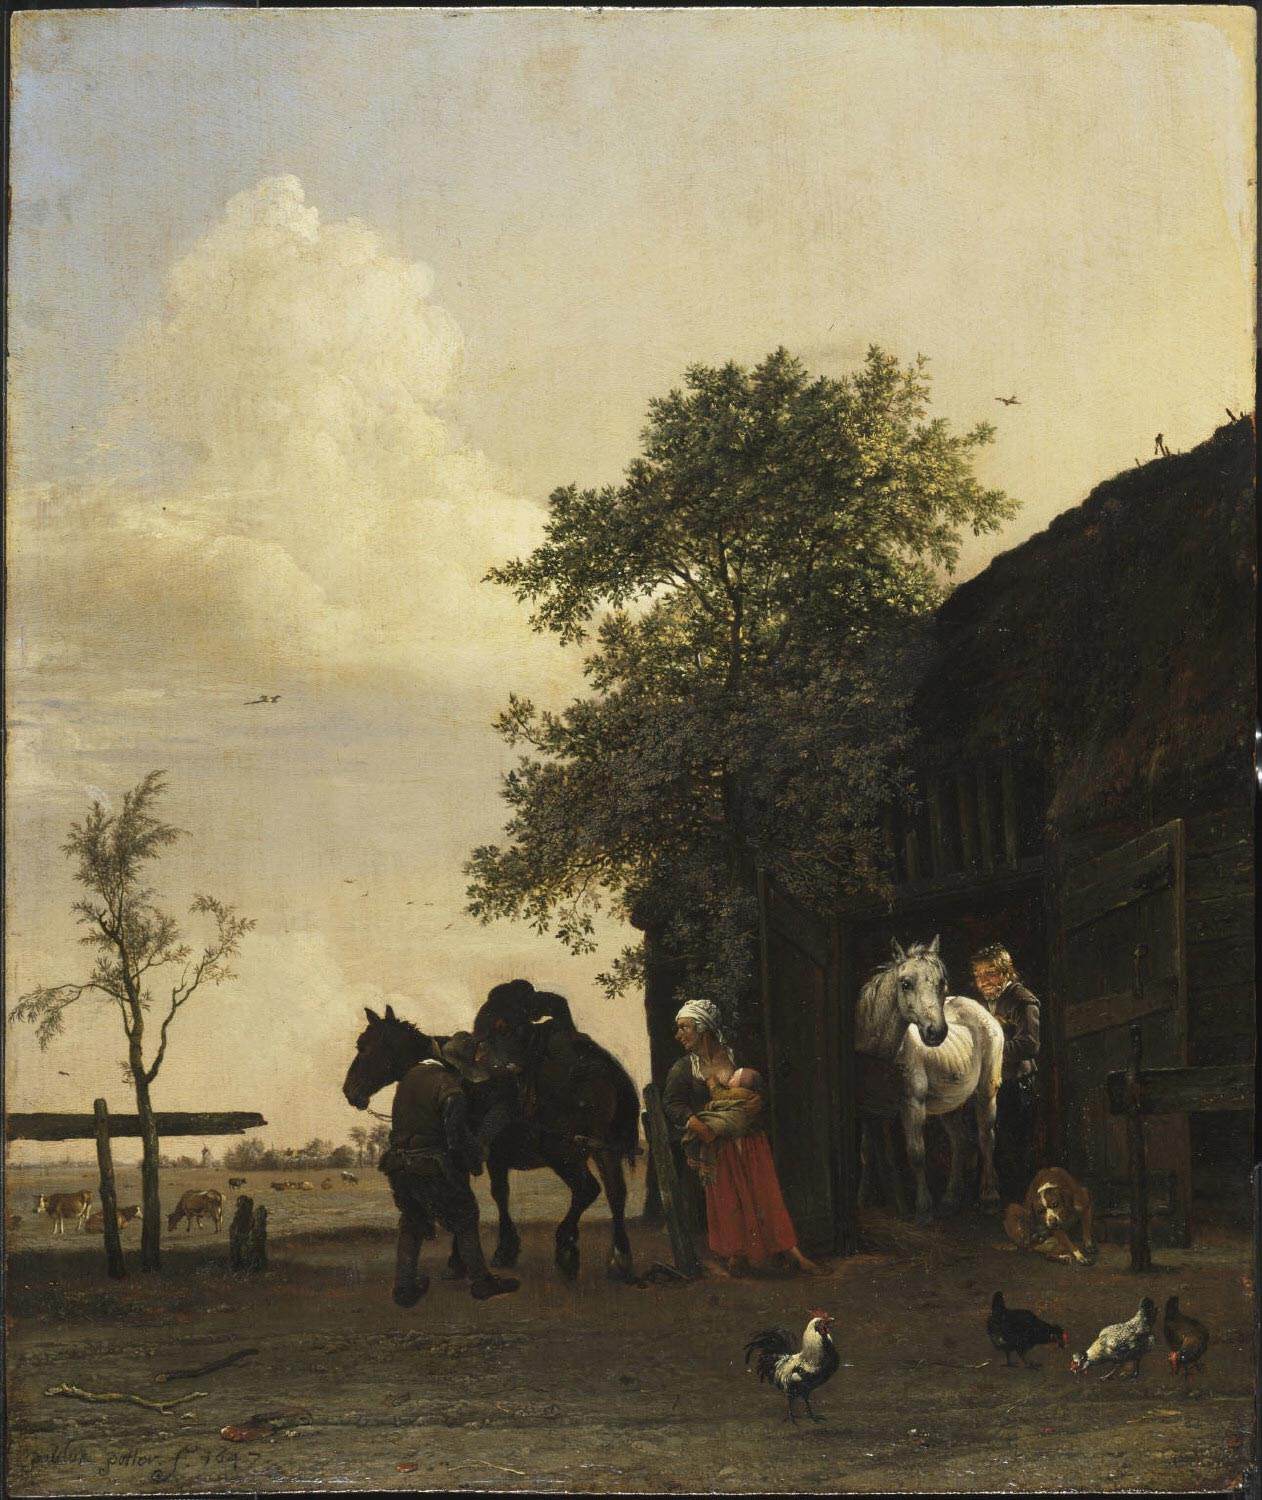 "Paulus Potter- Figures with Horses by a Stable, 1647, oil on panel, 17.75x14.75"", Philadelphia Museum of Art"